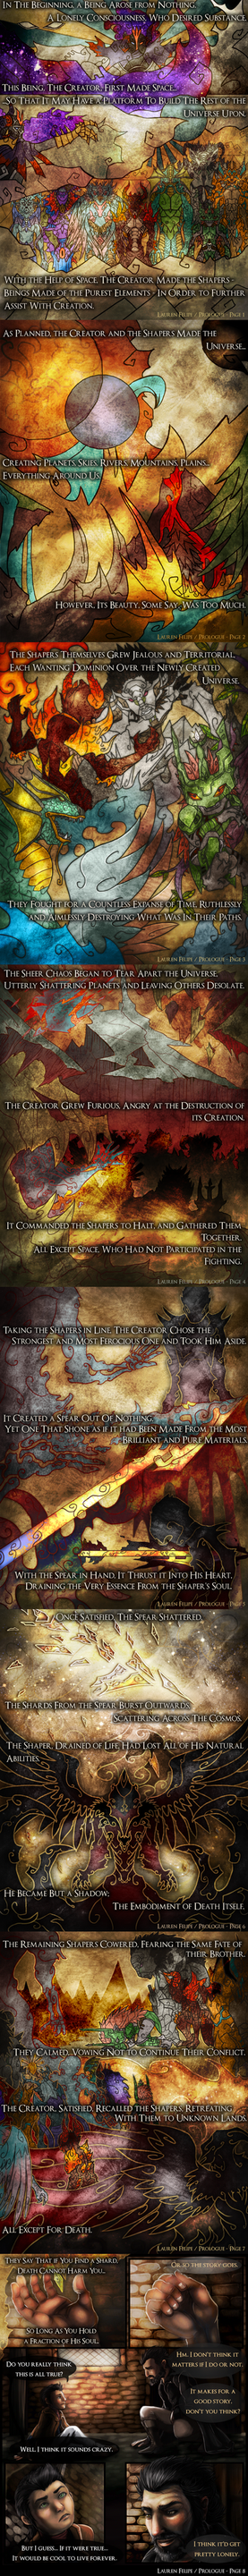 The Immortal's Shard - Prologue Pages 1-8 by Dargonite